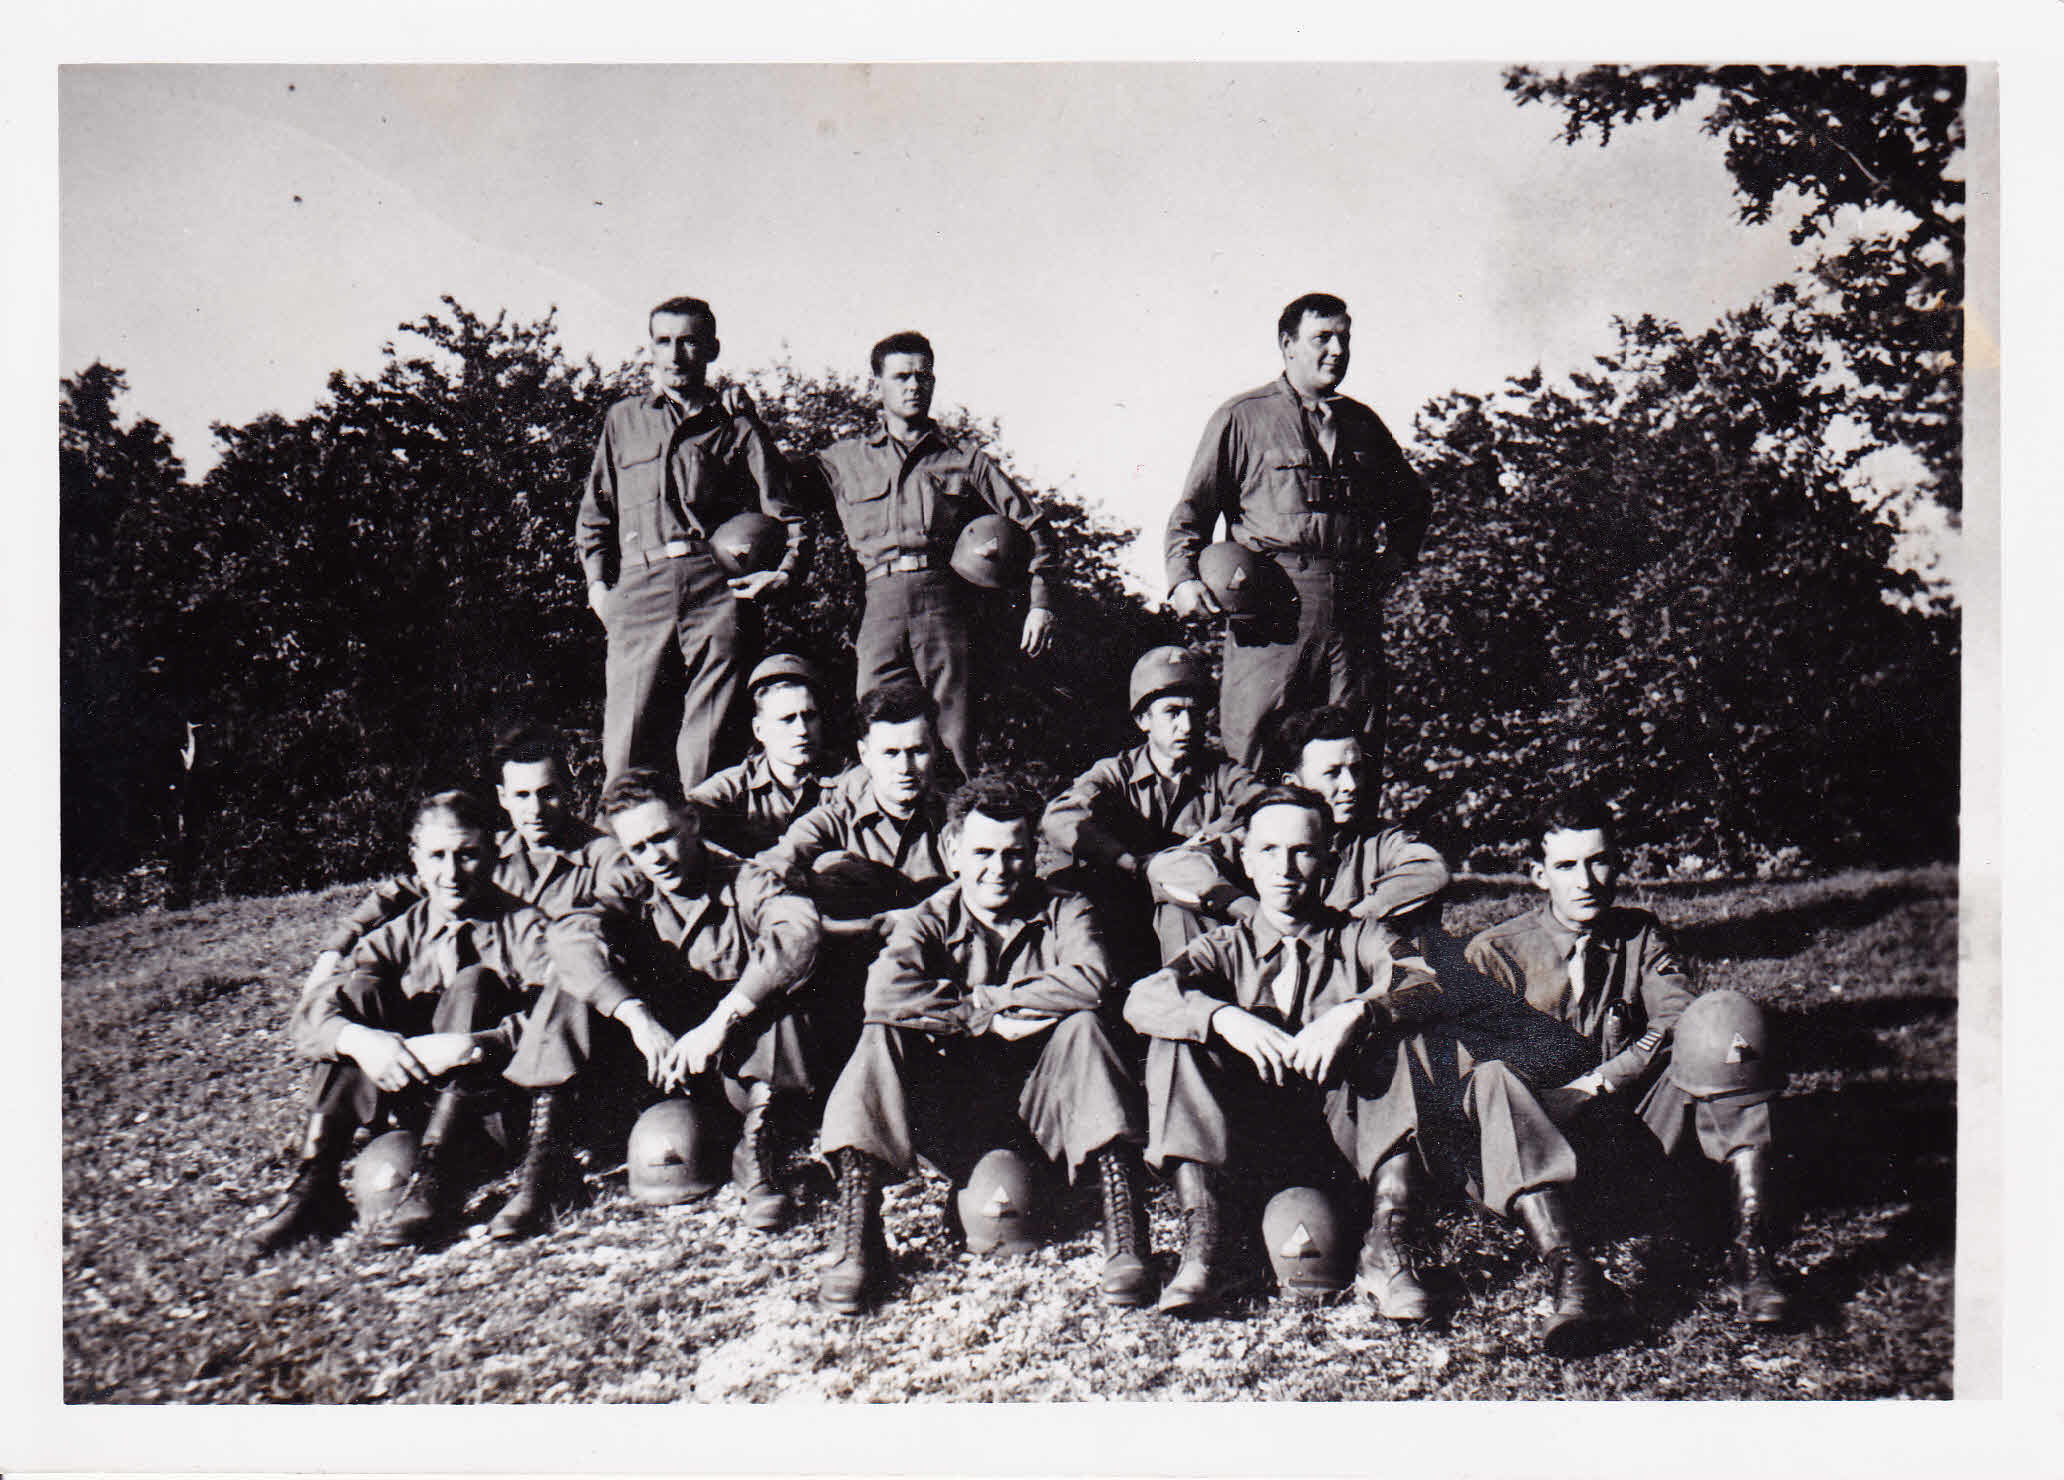 The men of the Company E, 17th Armored Engineer Battalion after the Potsdam conference. Courstesy of Dave Ketchpaw.